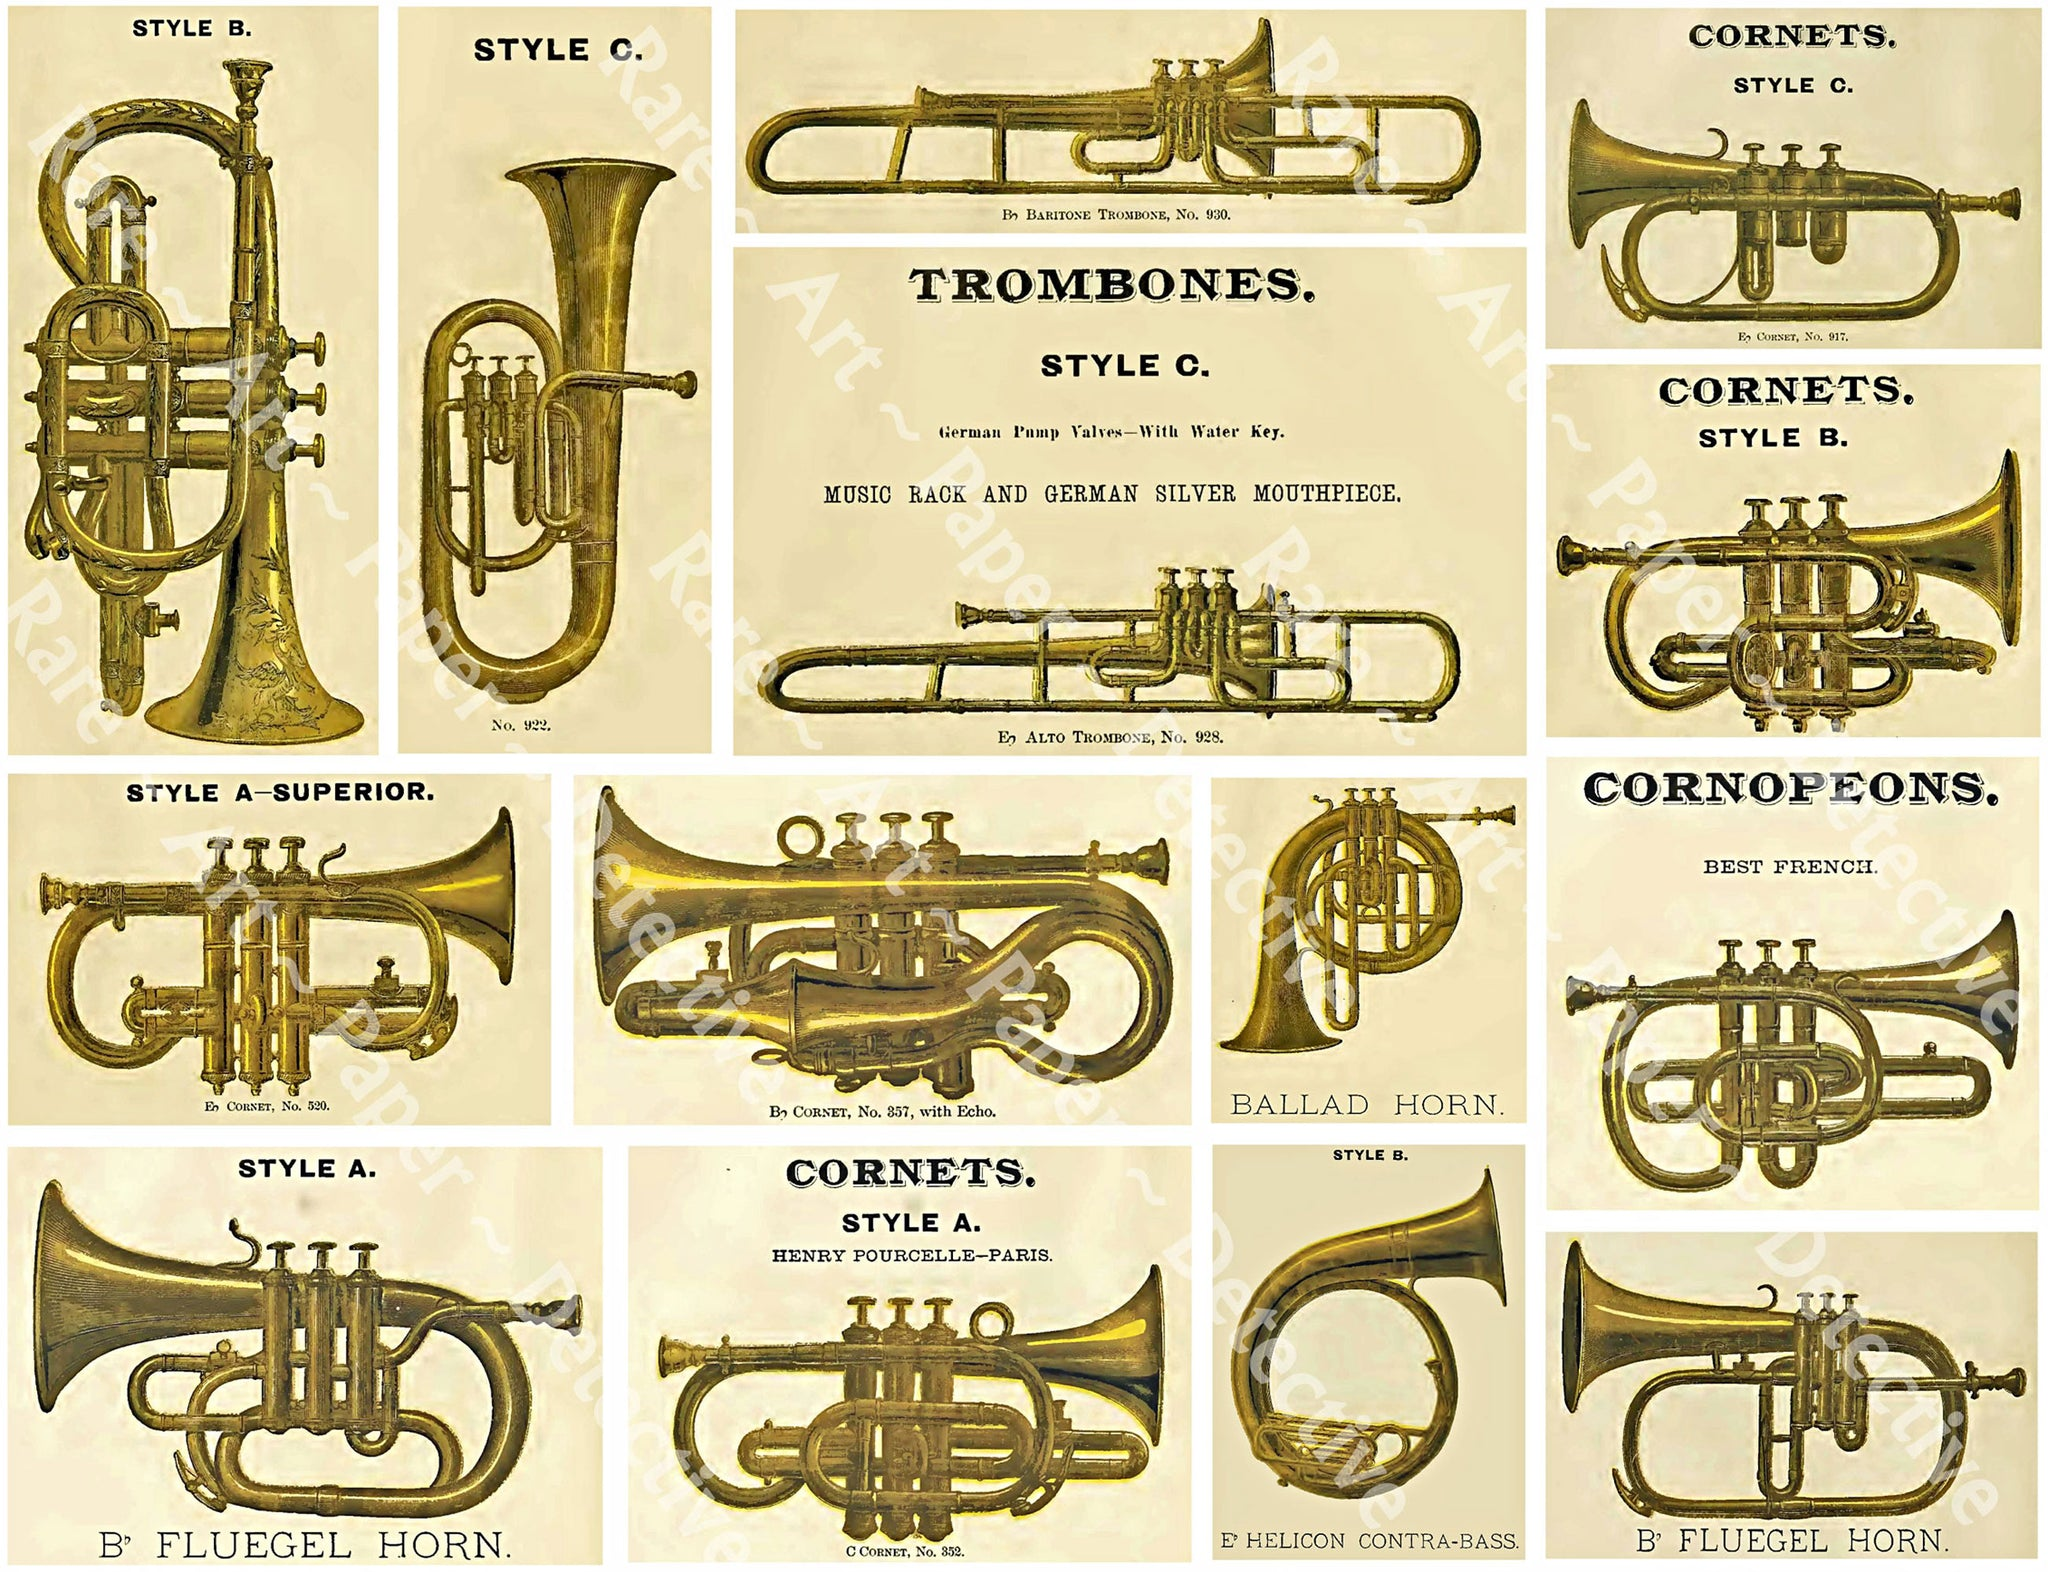 Musical Band Instruments Sticker Sheet, Antique Catalog Art Graphics, Brass Horns, Music Journals, Decor & Collage, Trombones, Cornets, 855